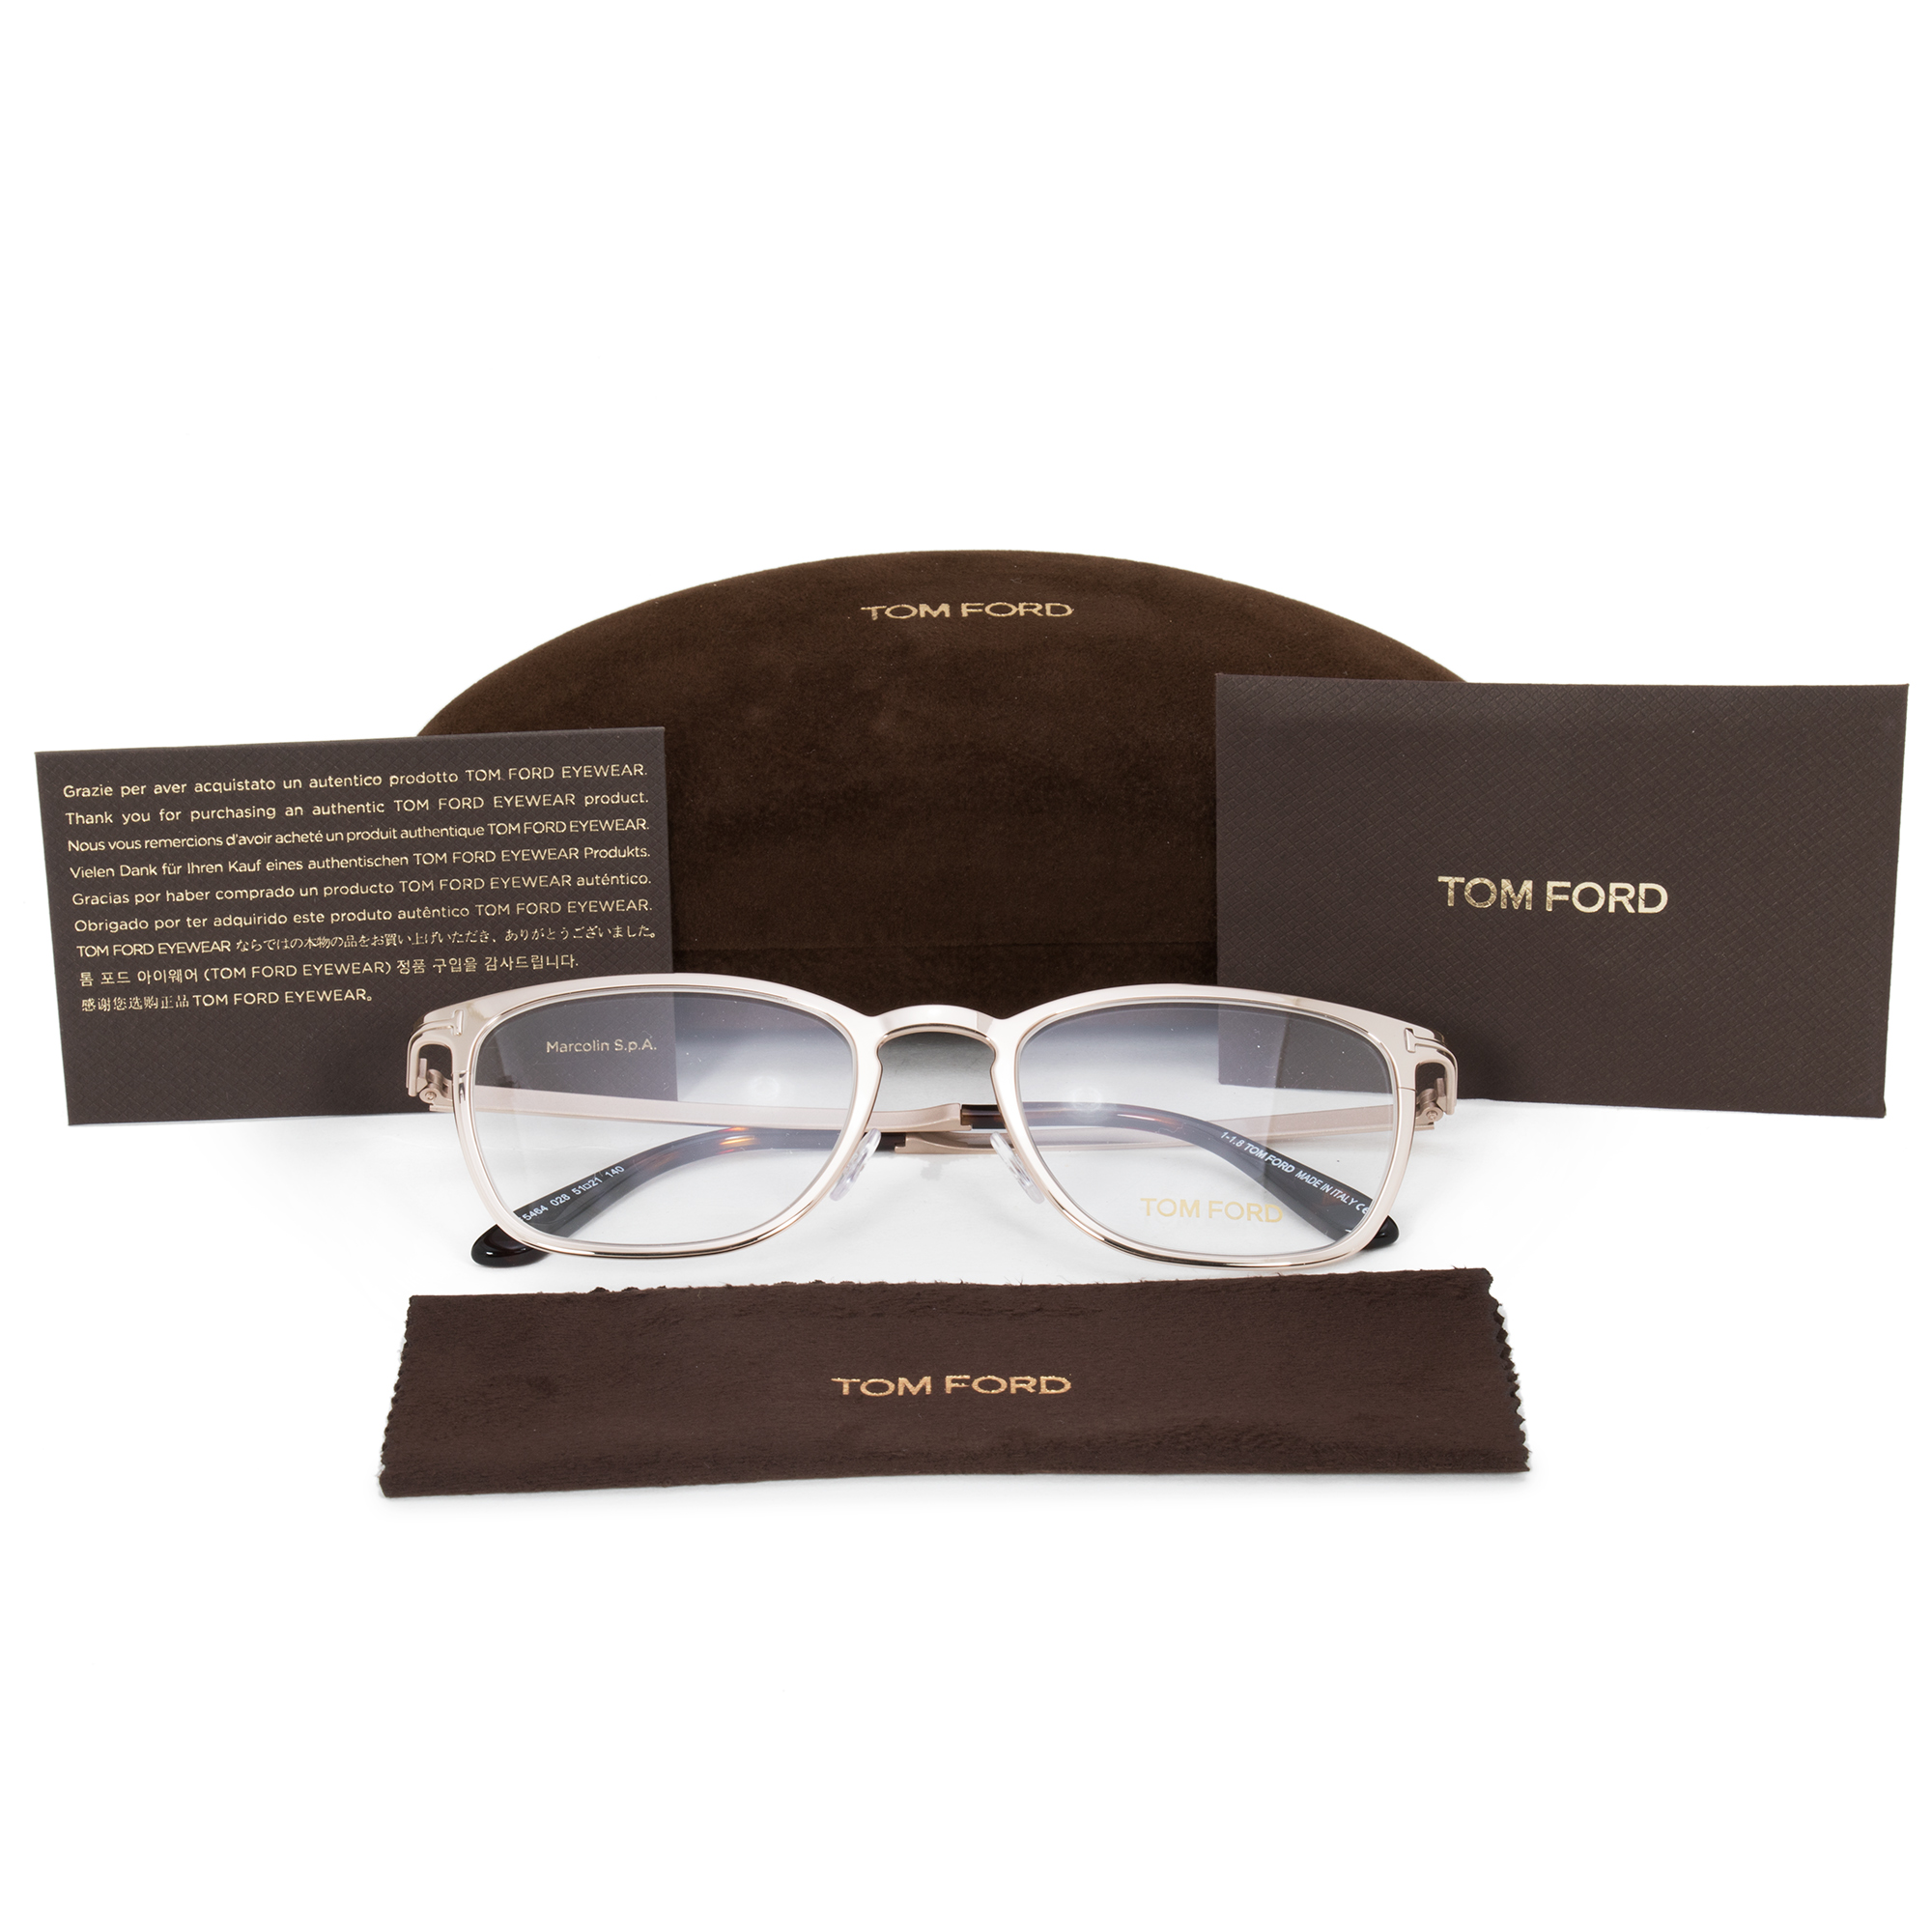 a023869dab Tom Ford Tom Ford Square Eyeglass Frames FT5464 028 51 - Walmart.com